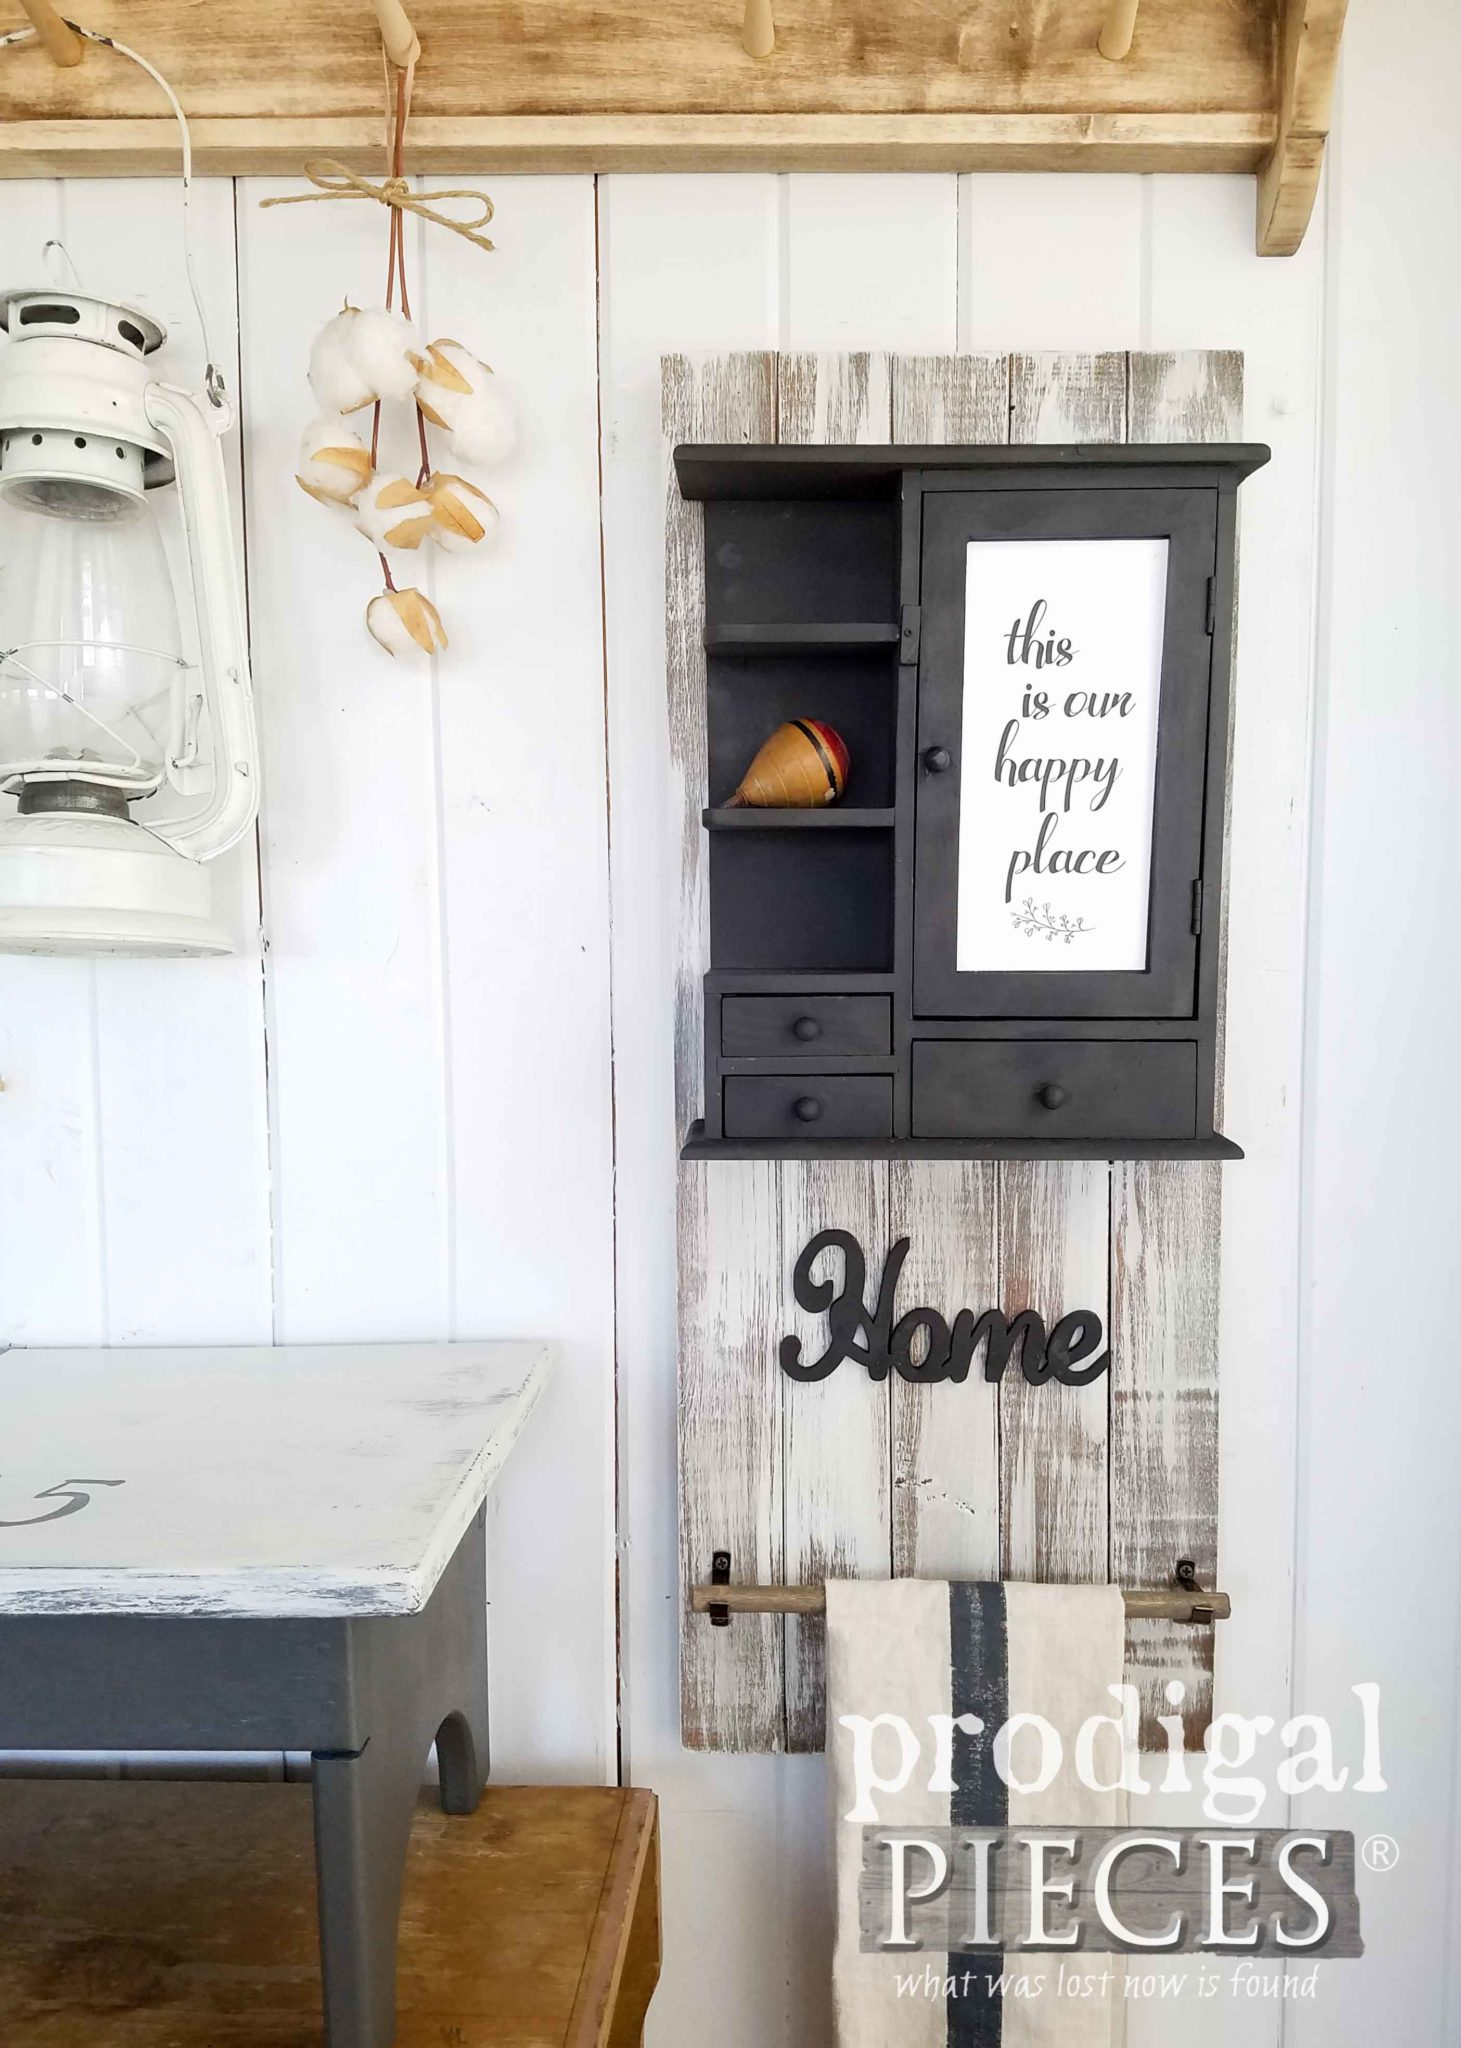 Modern Farmhouse Decor from Upcycled Thrift Store Finds by Larissa of Prodigal Pieces | prodigalpieces.com